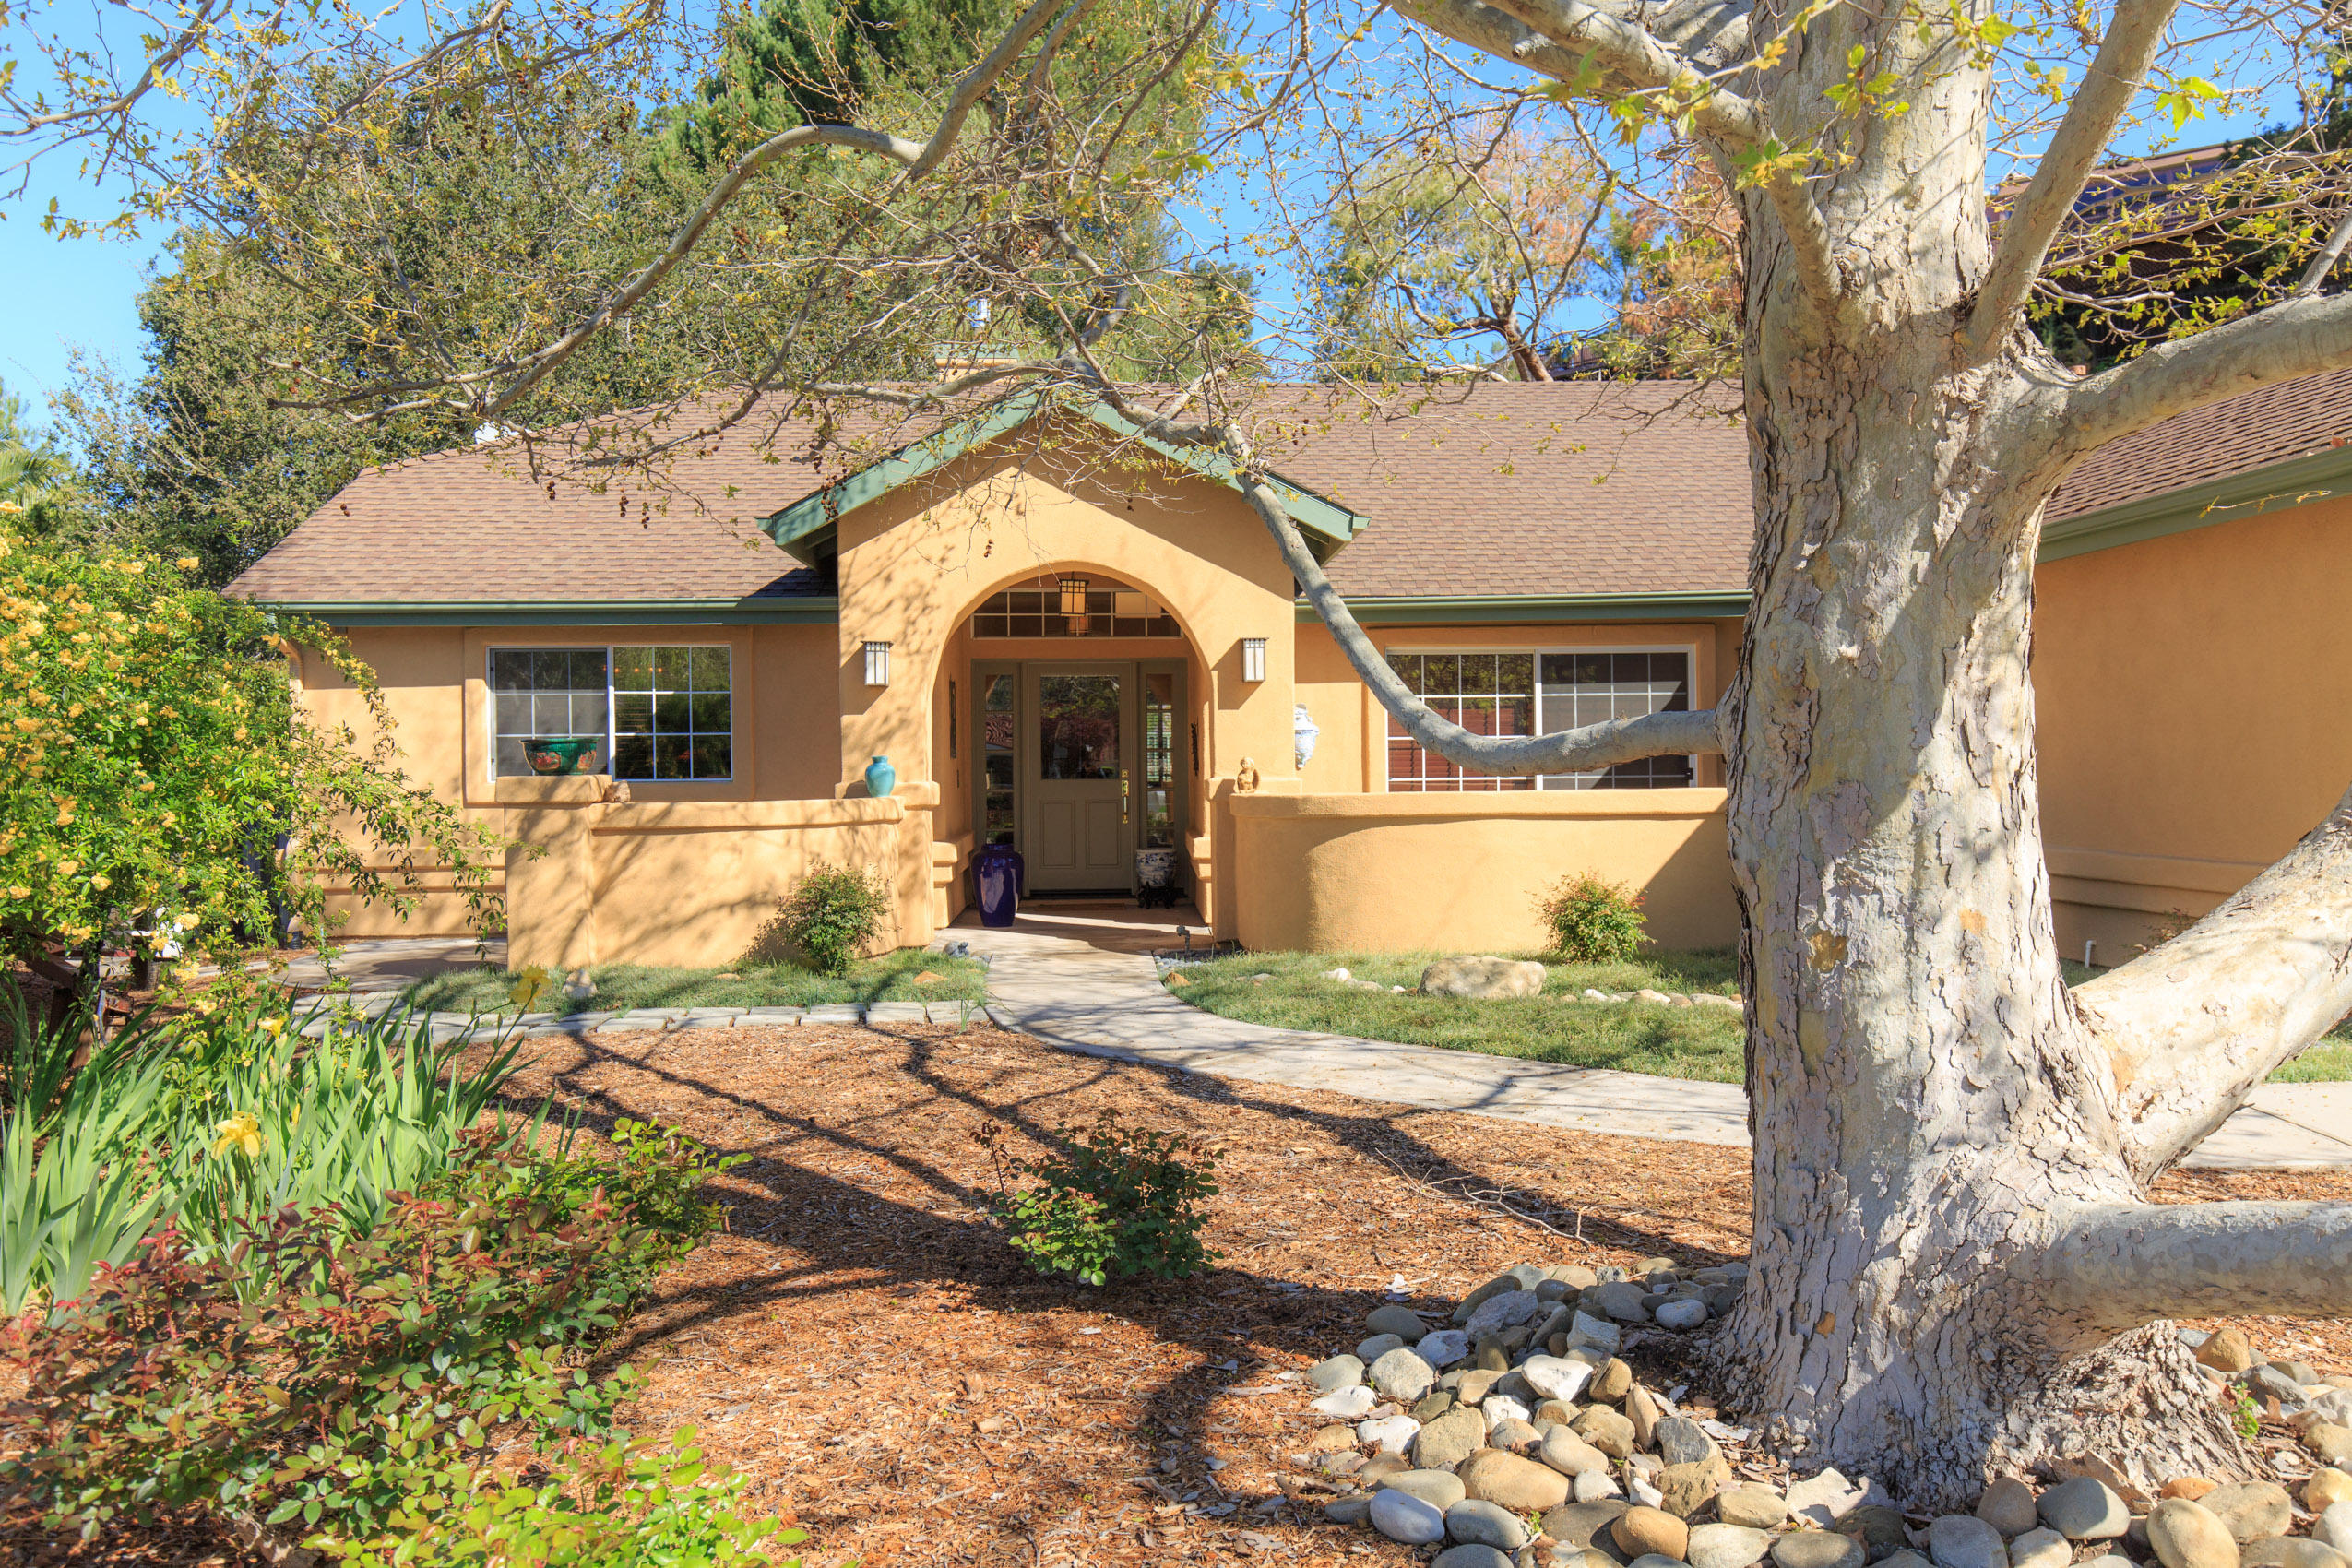 Property photo for 87 Pepperwood Way Solvang, California 93463 - 16-786